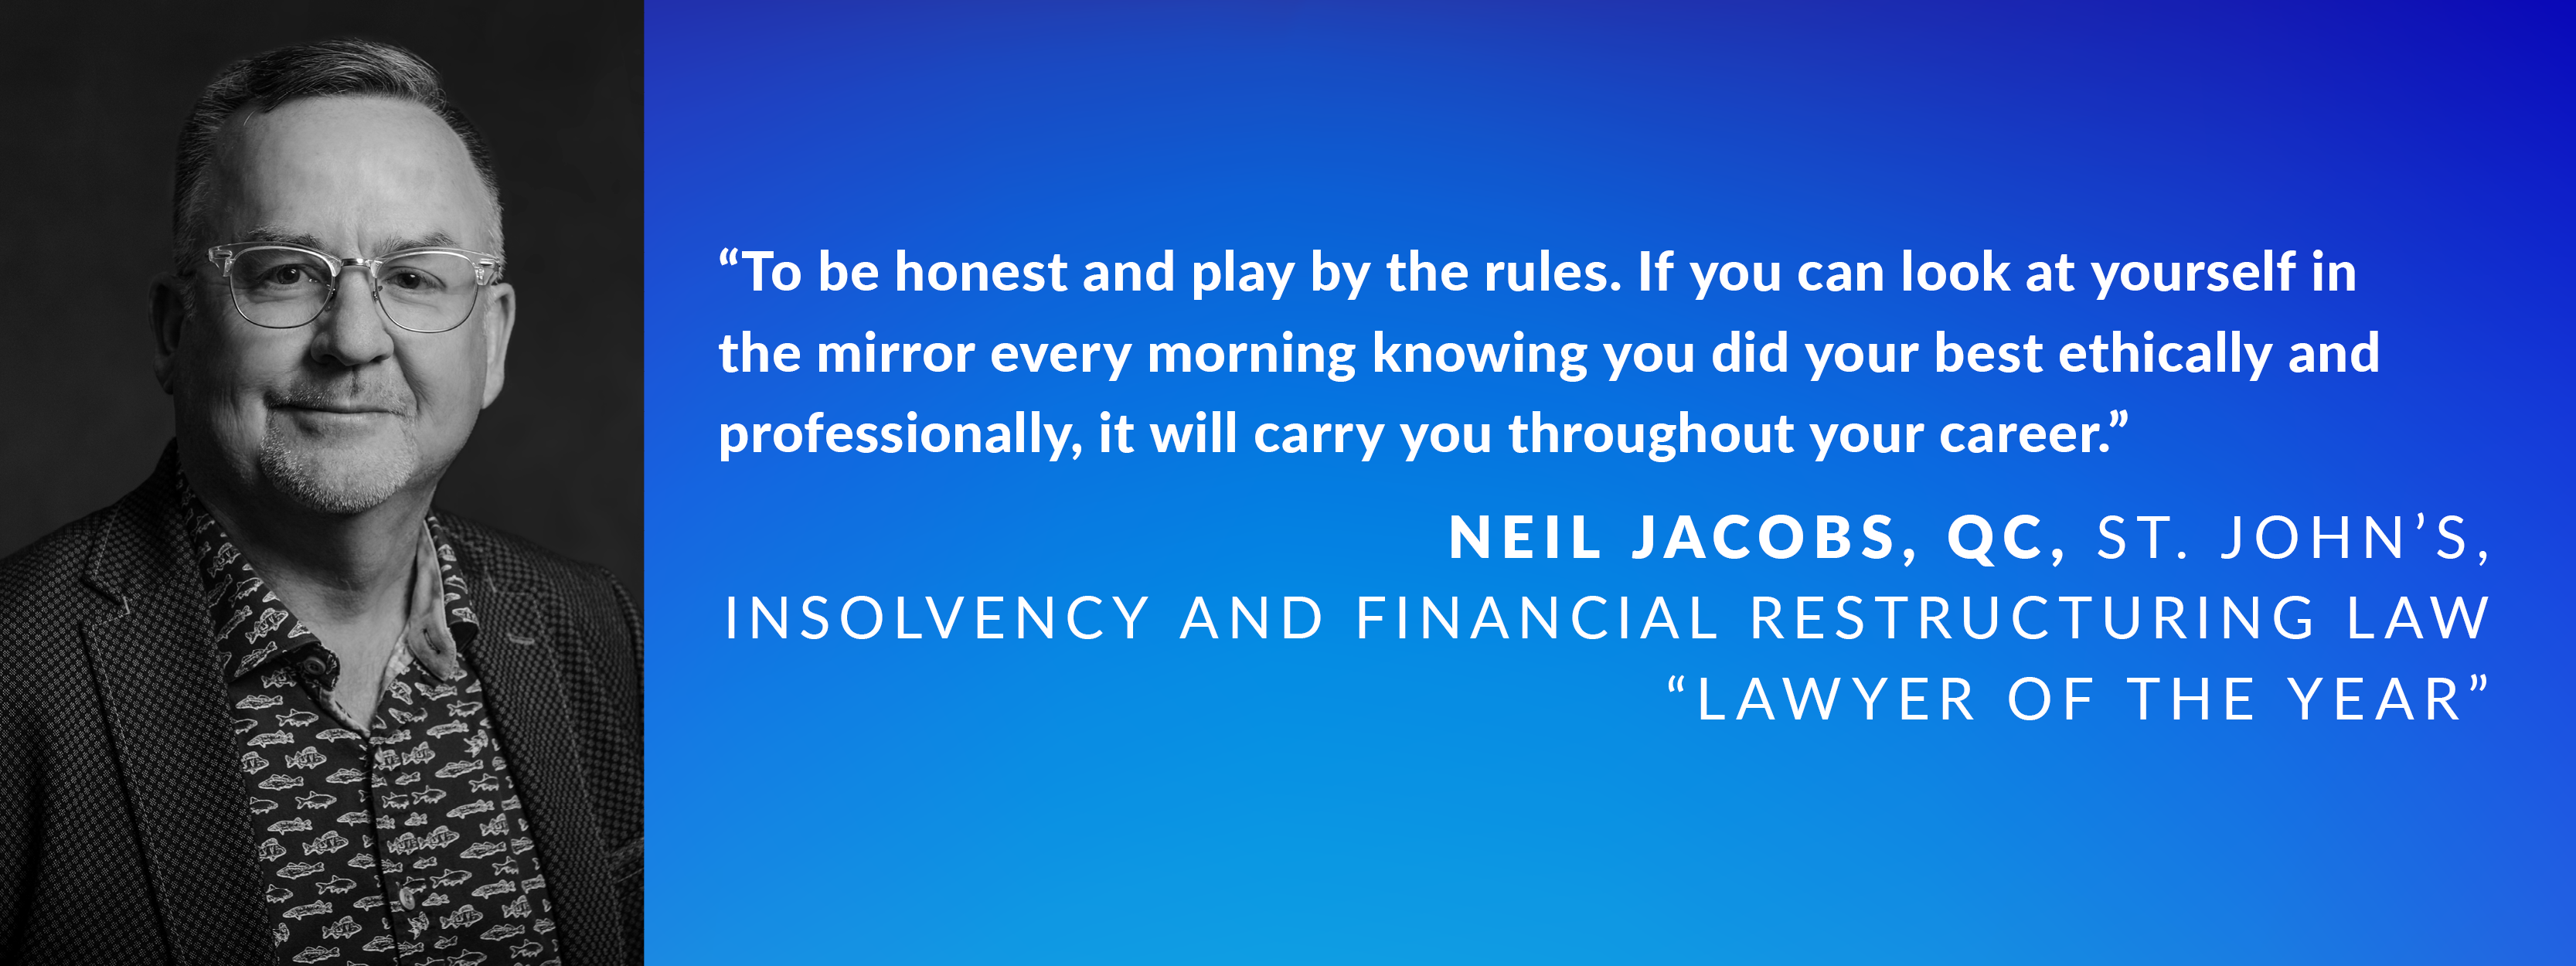 Neil Jacobs, QC, St. John's, Insolvency and Financial Restructuring Law Lawyer of the Year